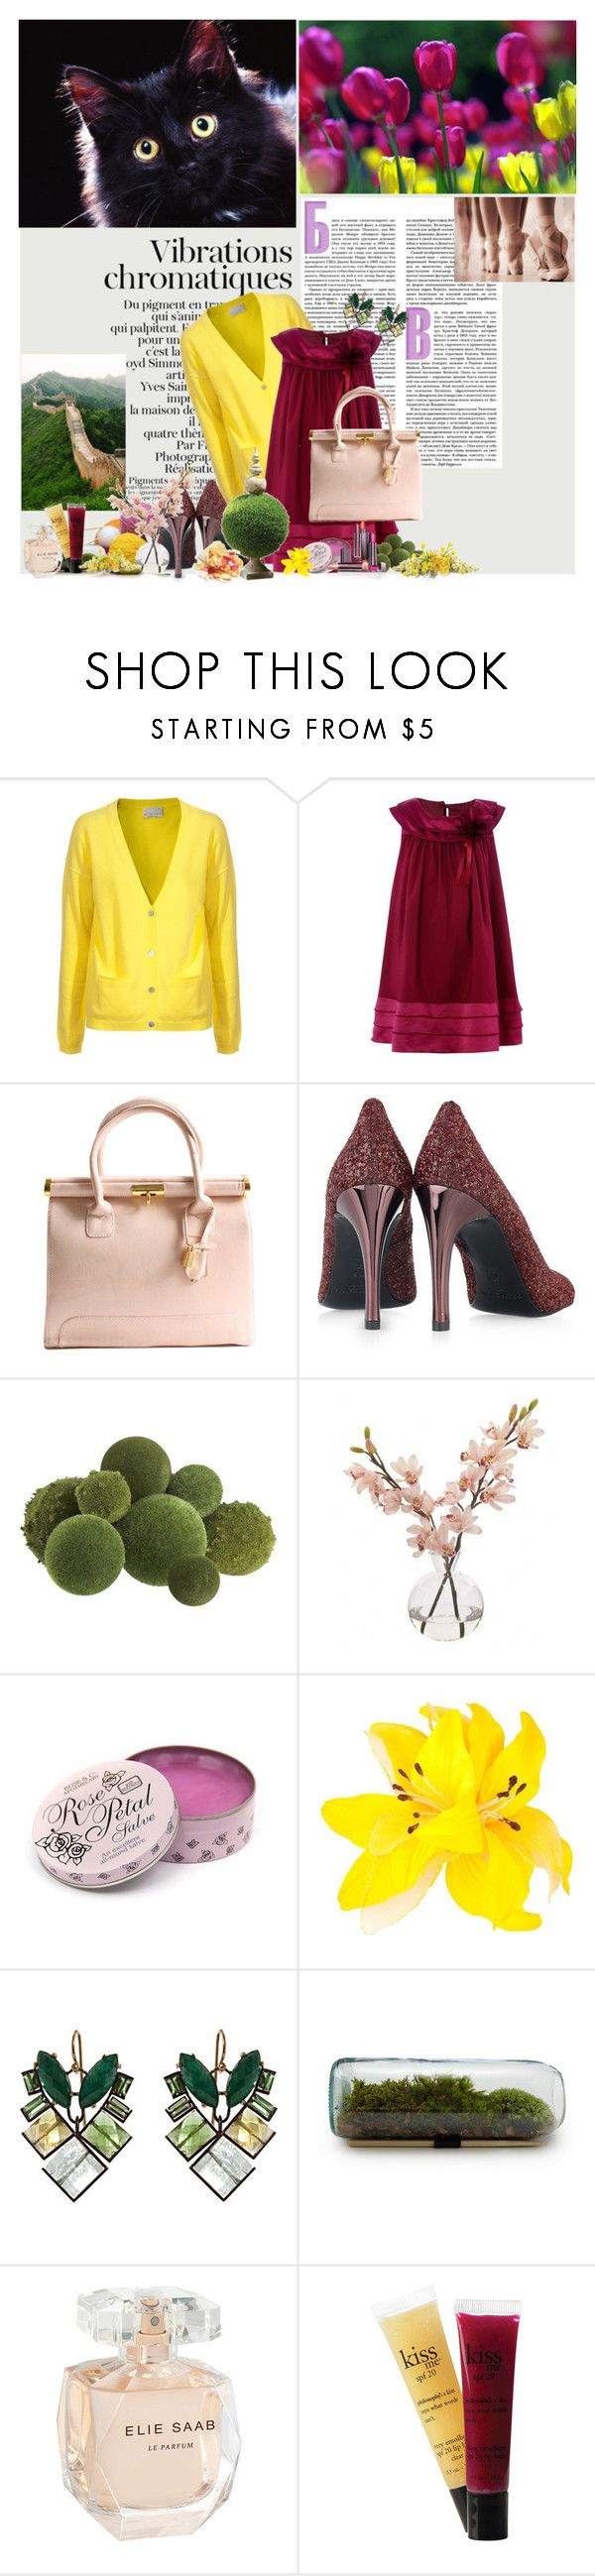 """""""Unbenannt #612"""" by the-dawn ❤ liked on Polyvore featuring FTC, Pedro García, Crate and Barrel, INC International Concepts, Rose & Co., MOOD, Home Decorators Collection, Nak Armstrong, Elie Saab and philosophy"""